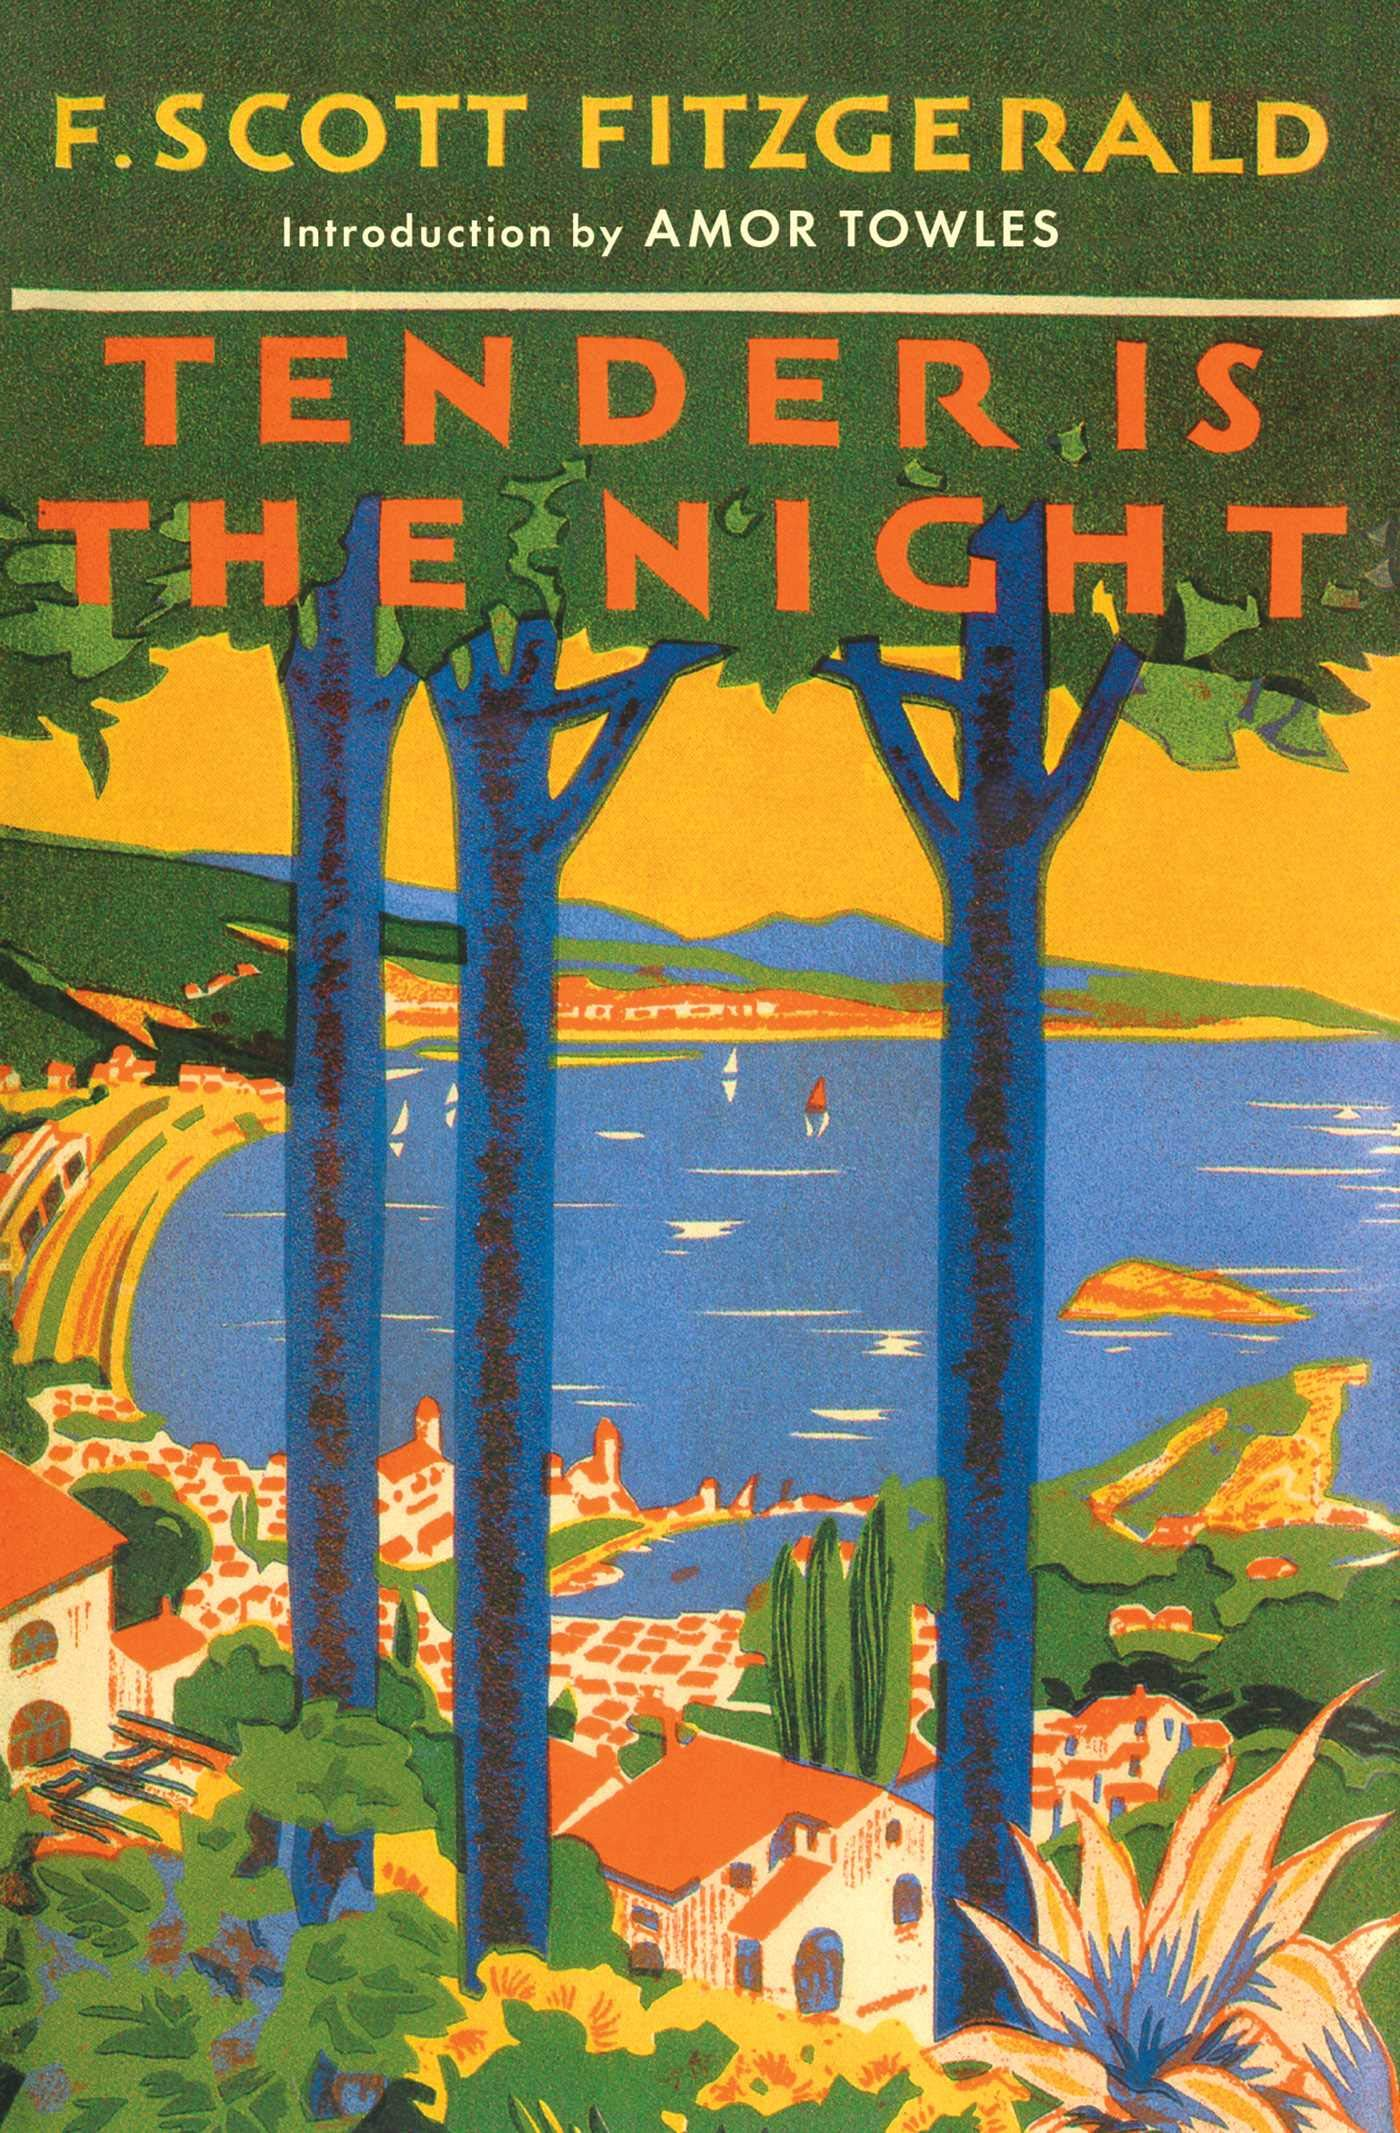 A 2019 edition of Tender is the Night, revisiting the original 1934 cover art.